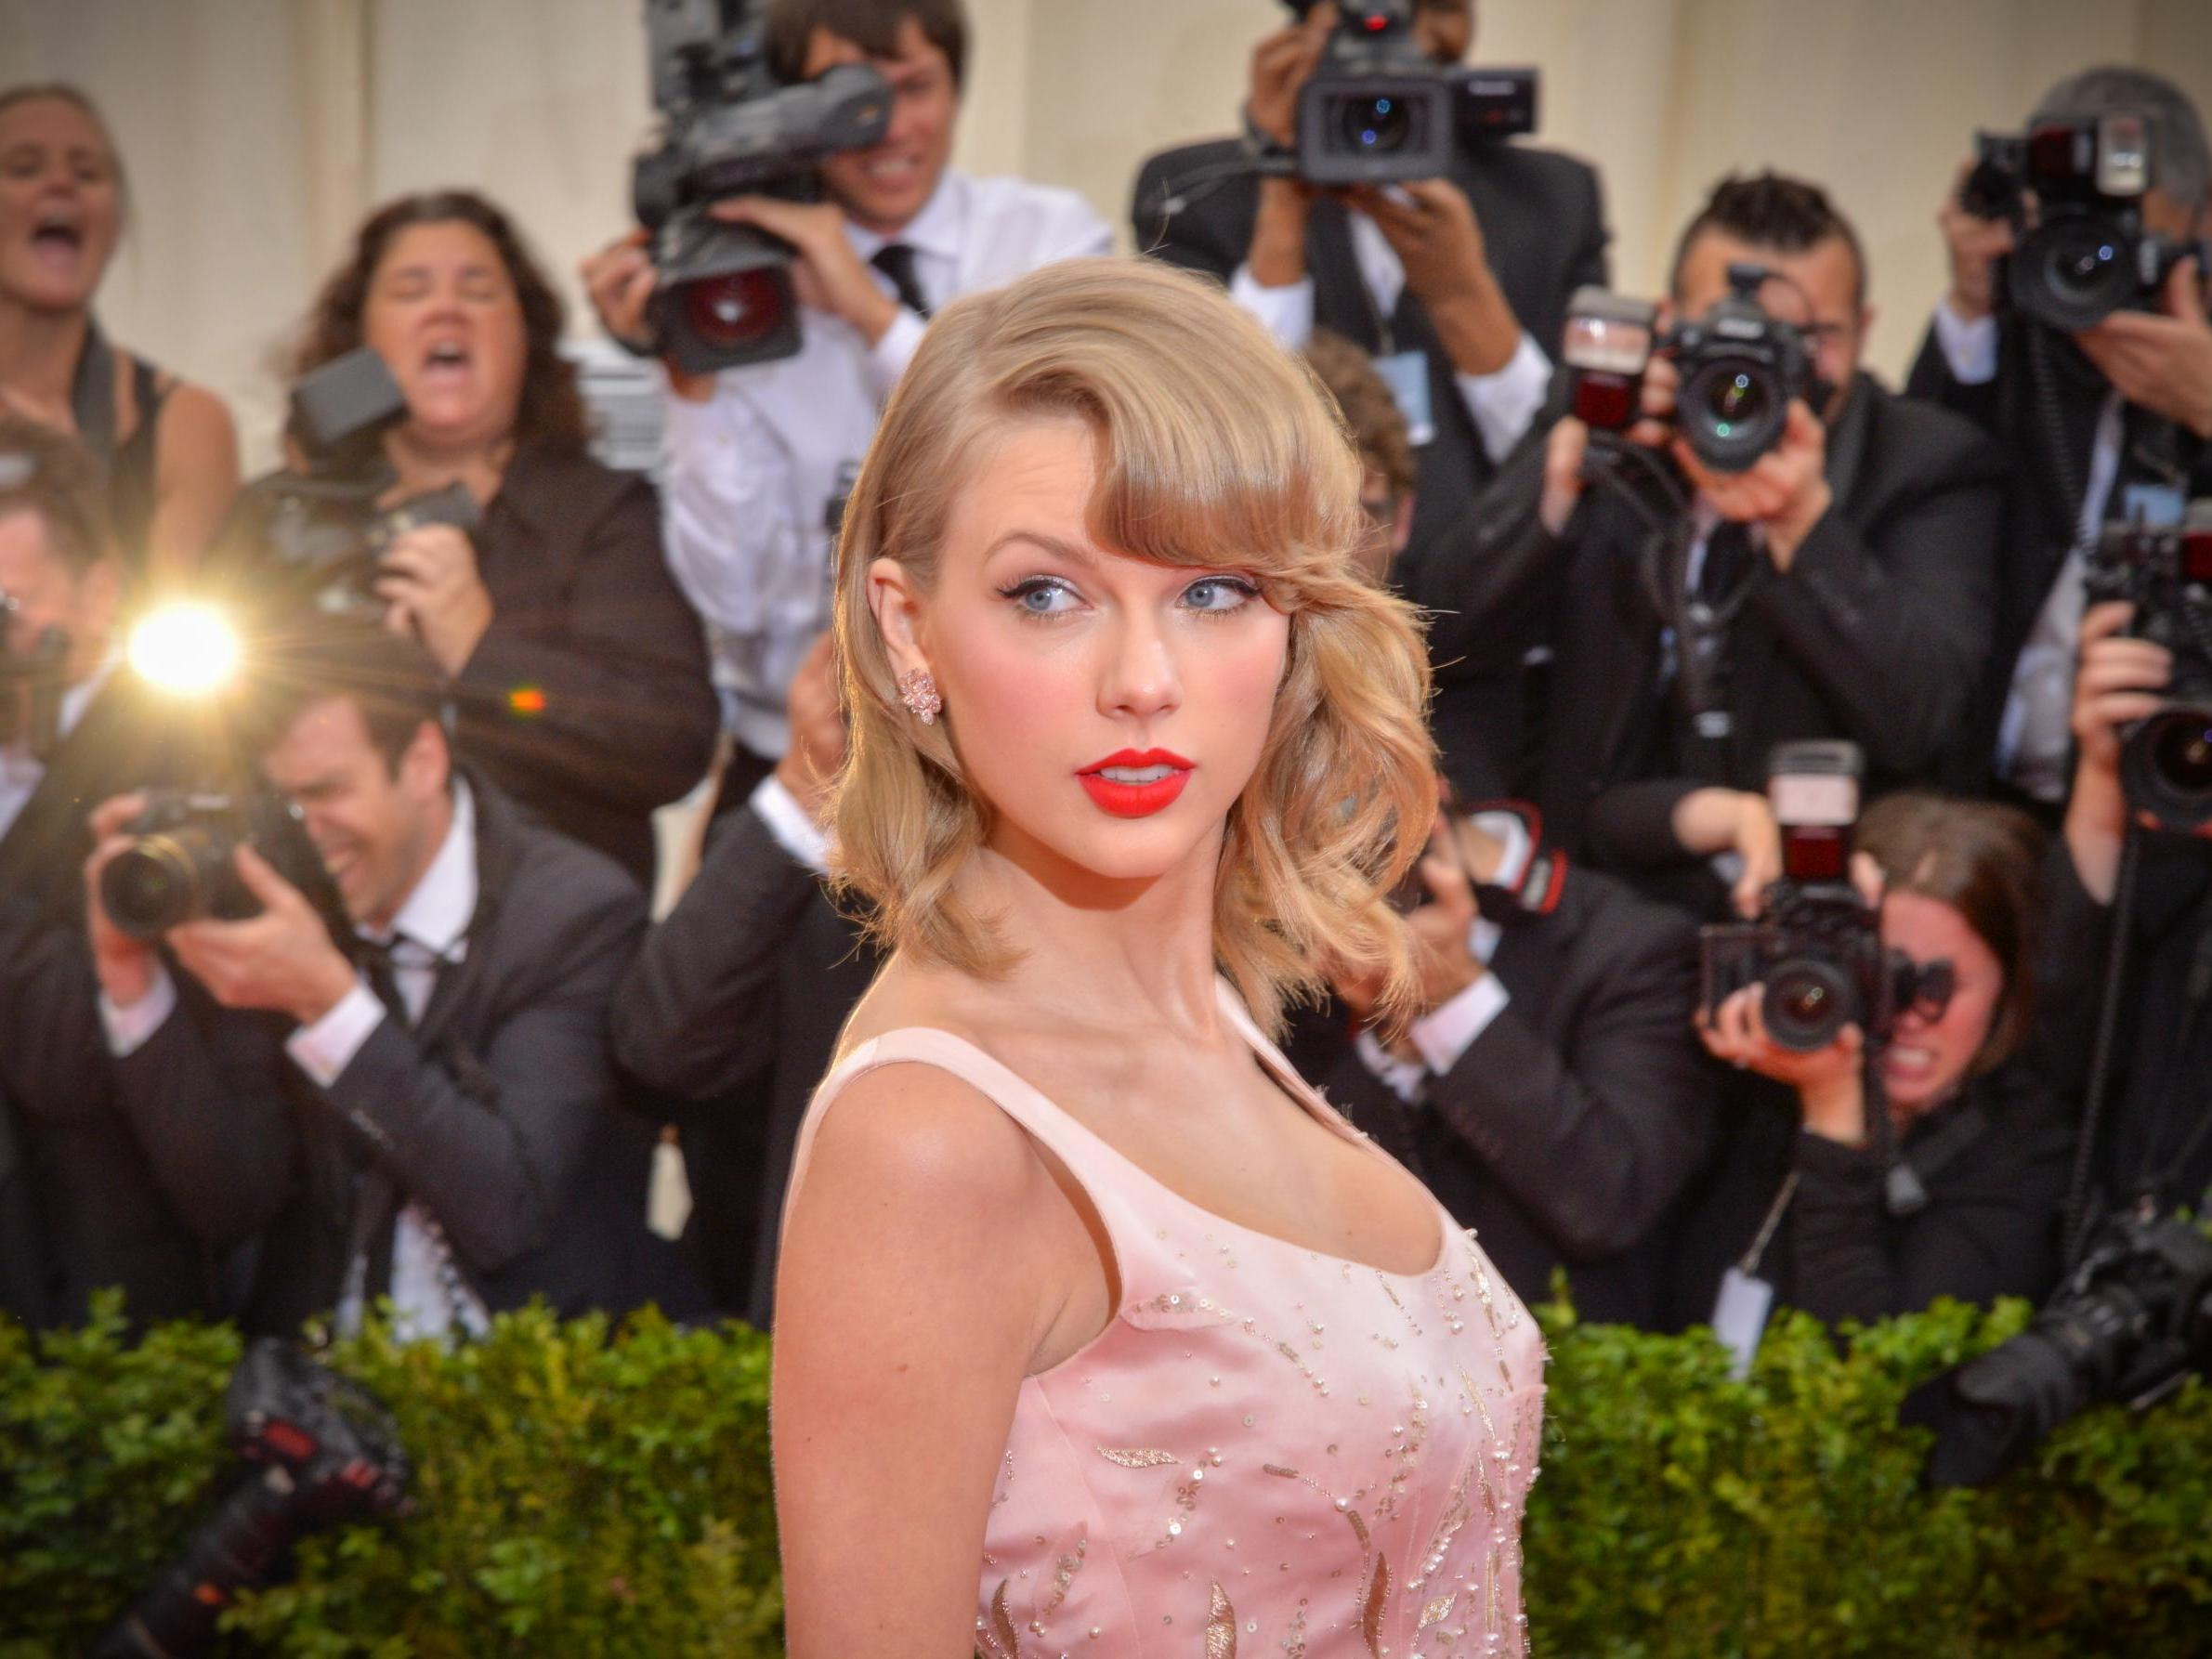 Taylor Swift 'threatened to sue' Microsoft over racist chatbot